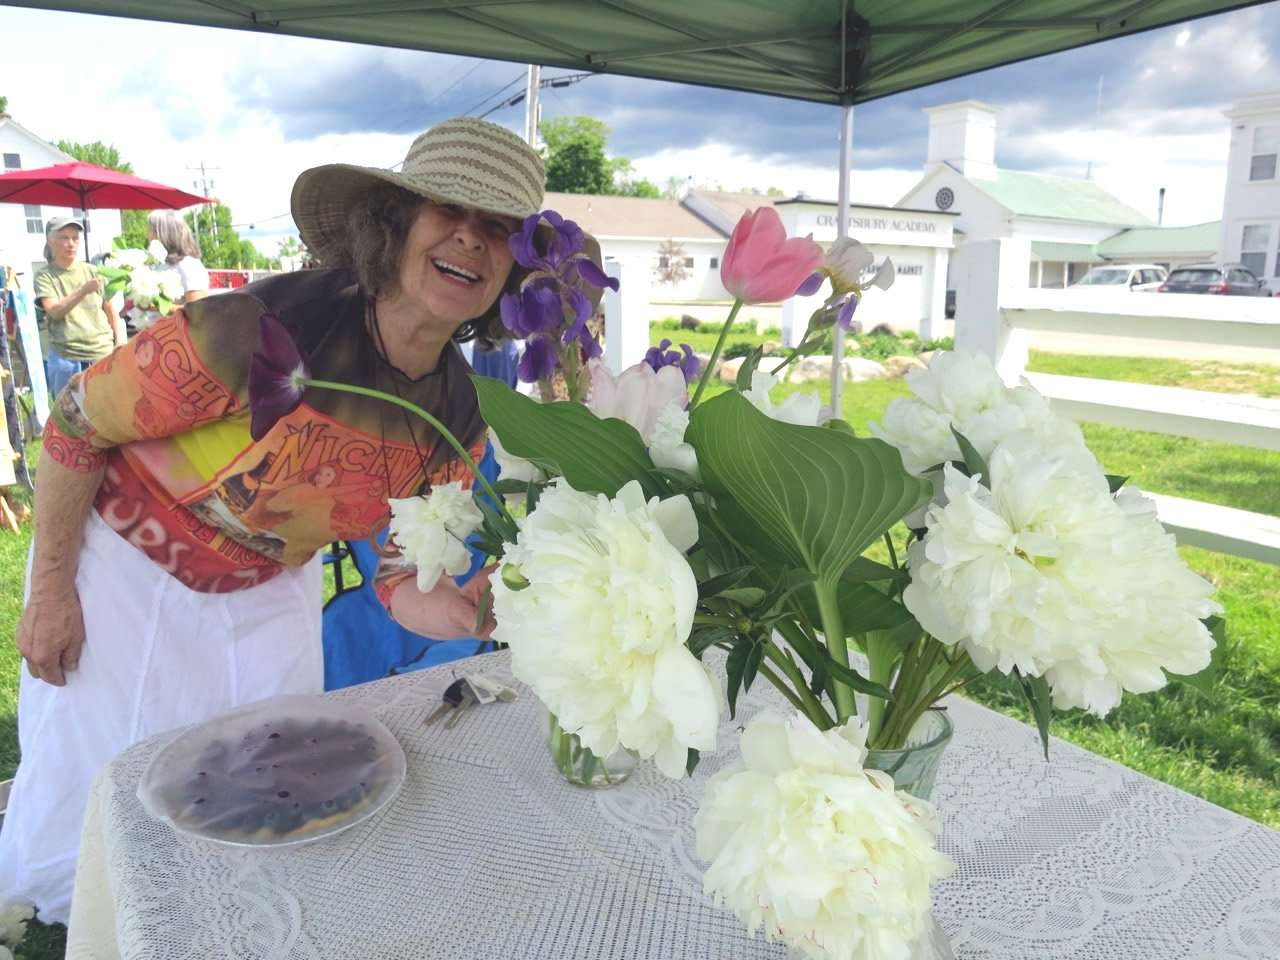 June Cook - Junes Flowers - Craftsbury Farmers Market